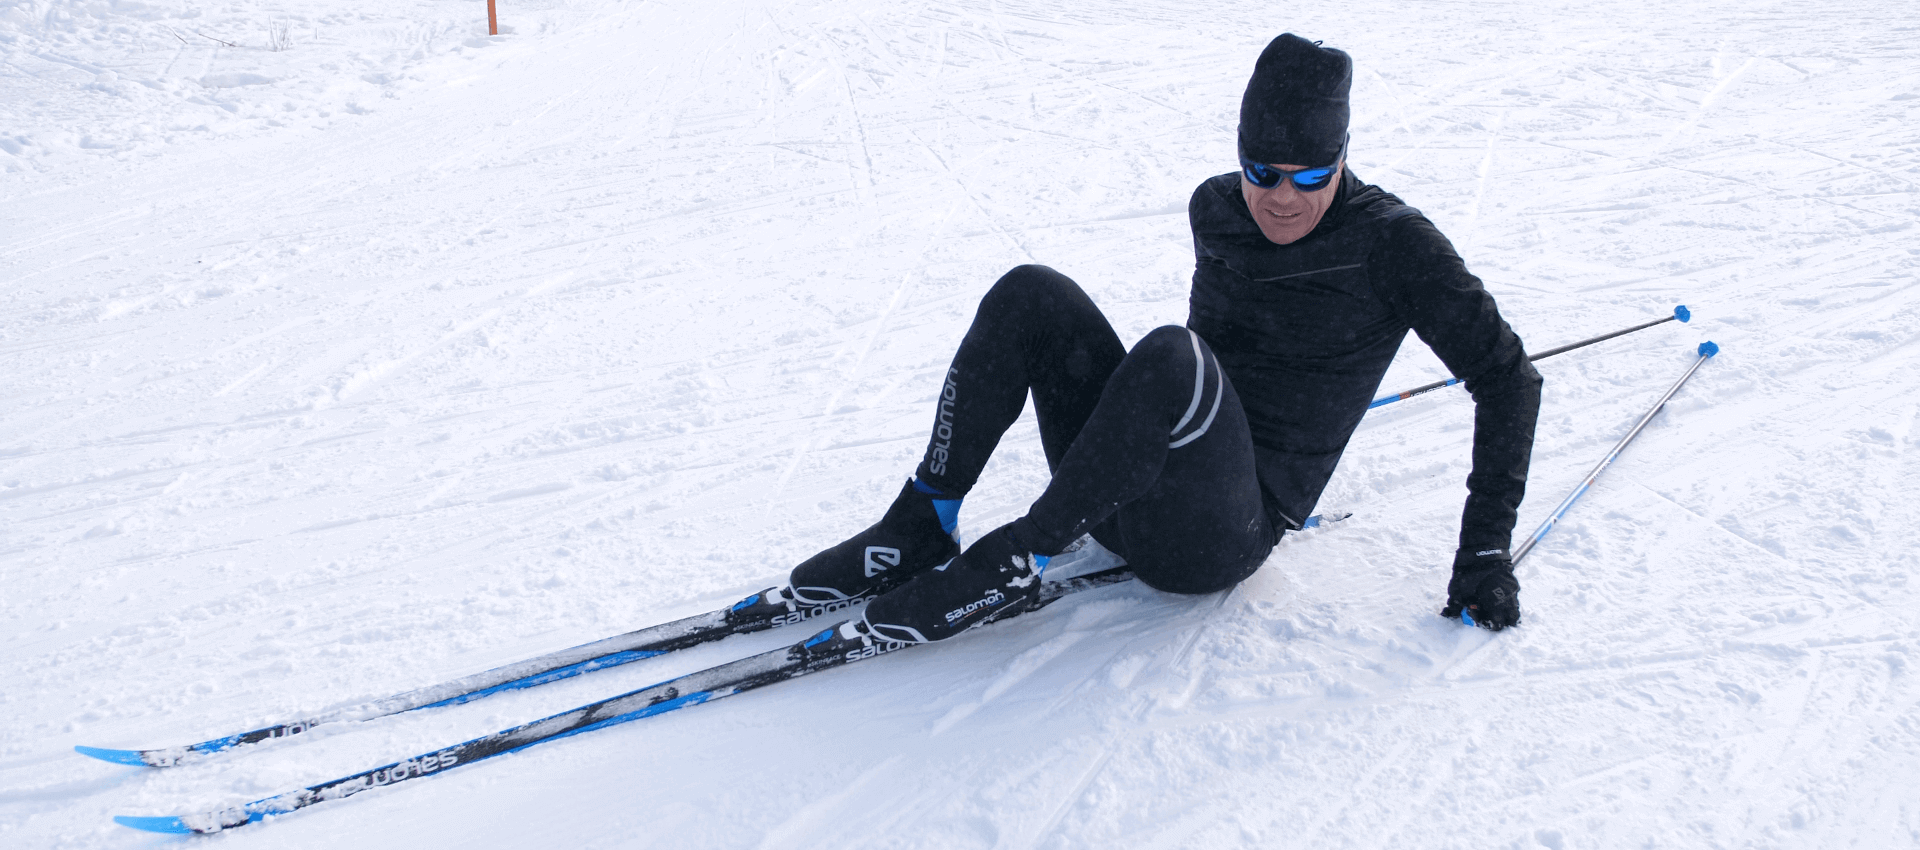 How to get up after falling on cross-country skis